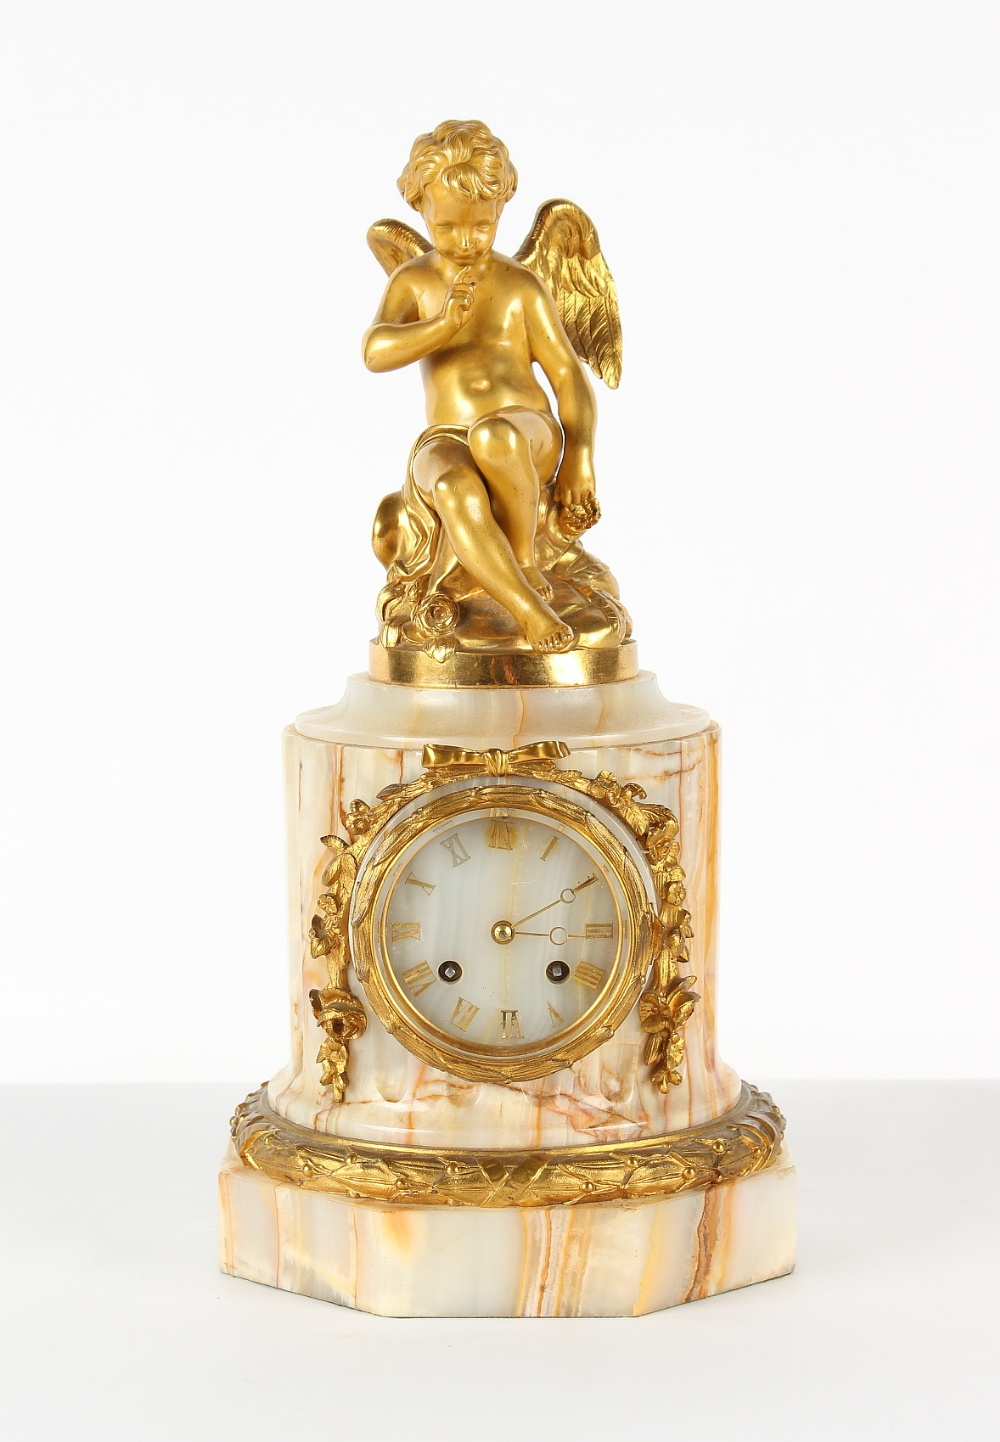 Property of a lady - a late 19th century French ormolu mounted onyx mantel clock, surmounted by a